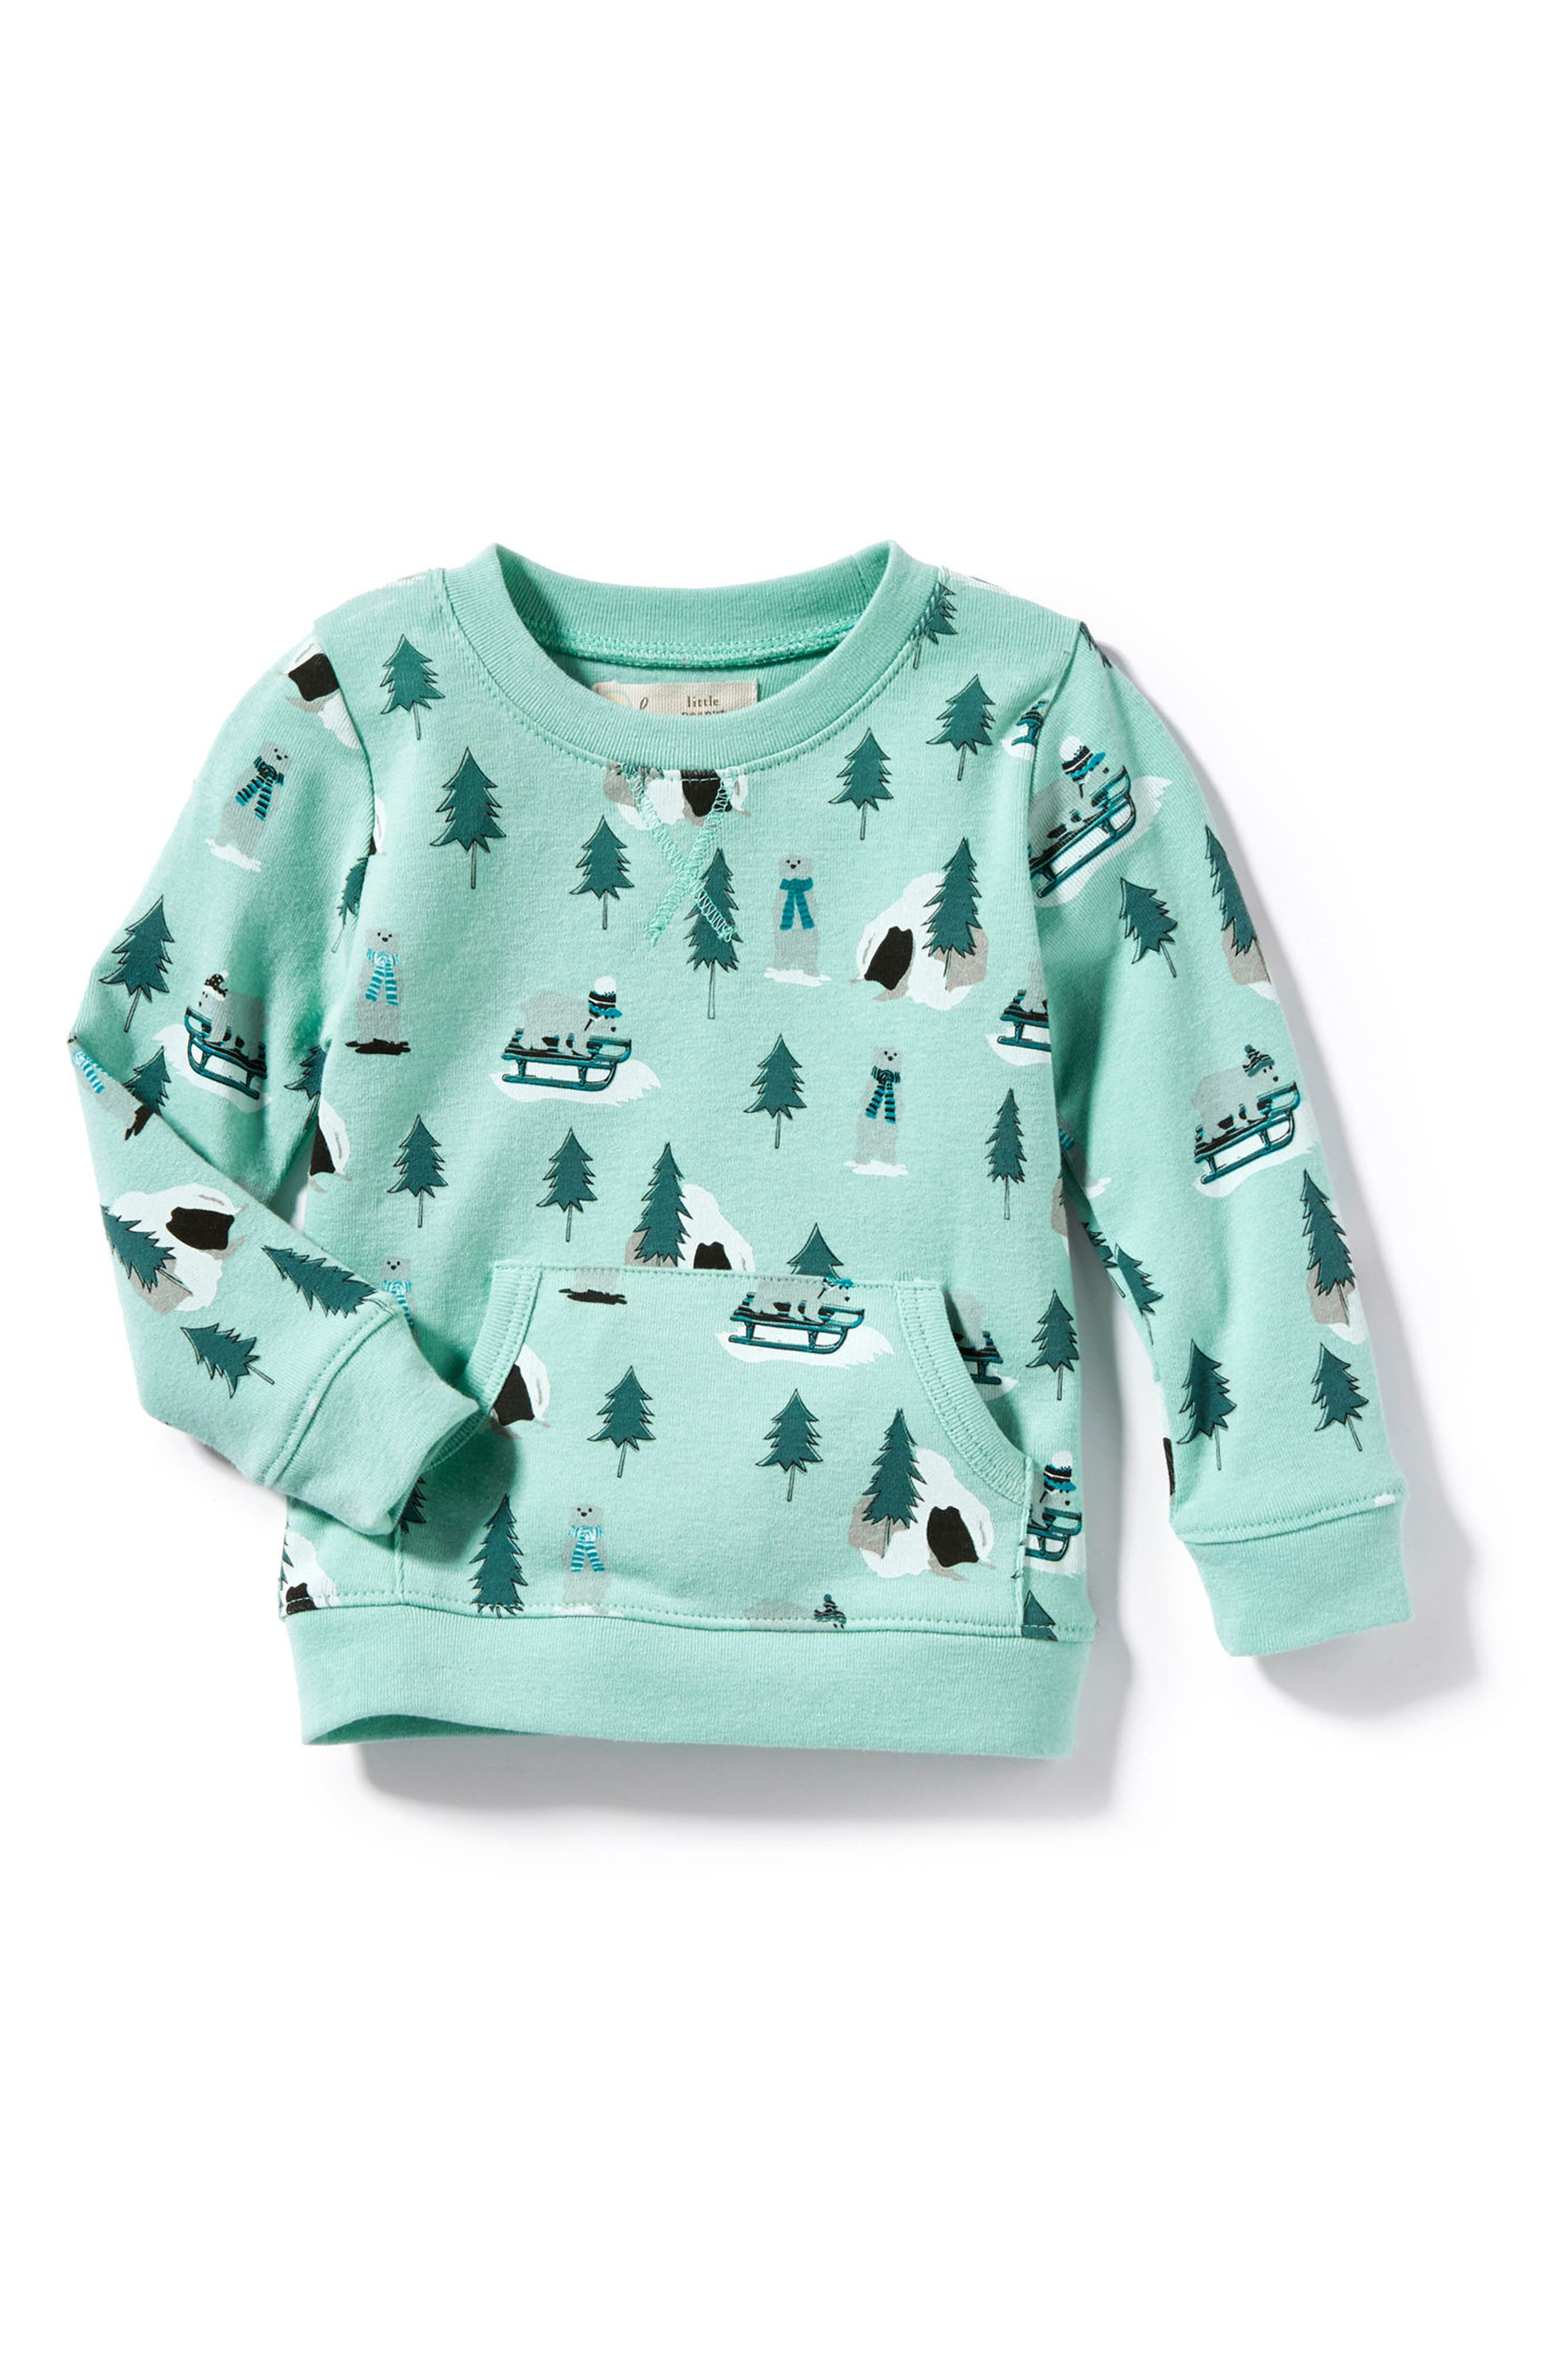 Alternate Image 1 Selected - Peek Snow Bear Graphic Top (Baby Boys)